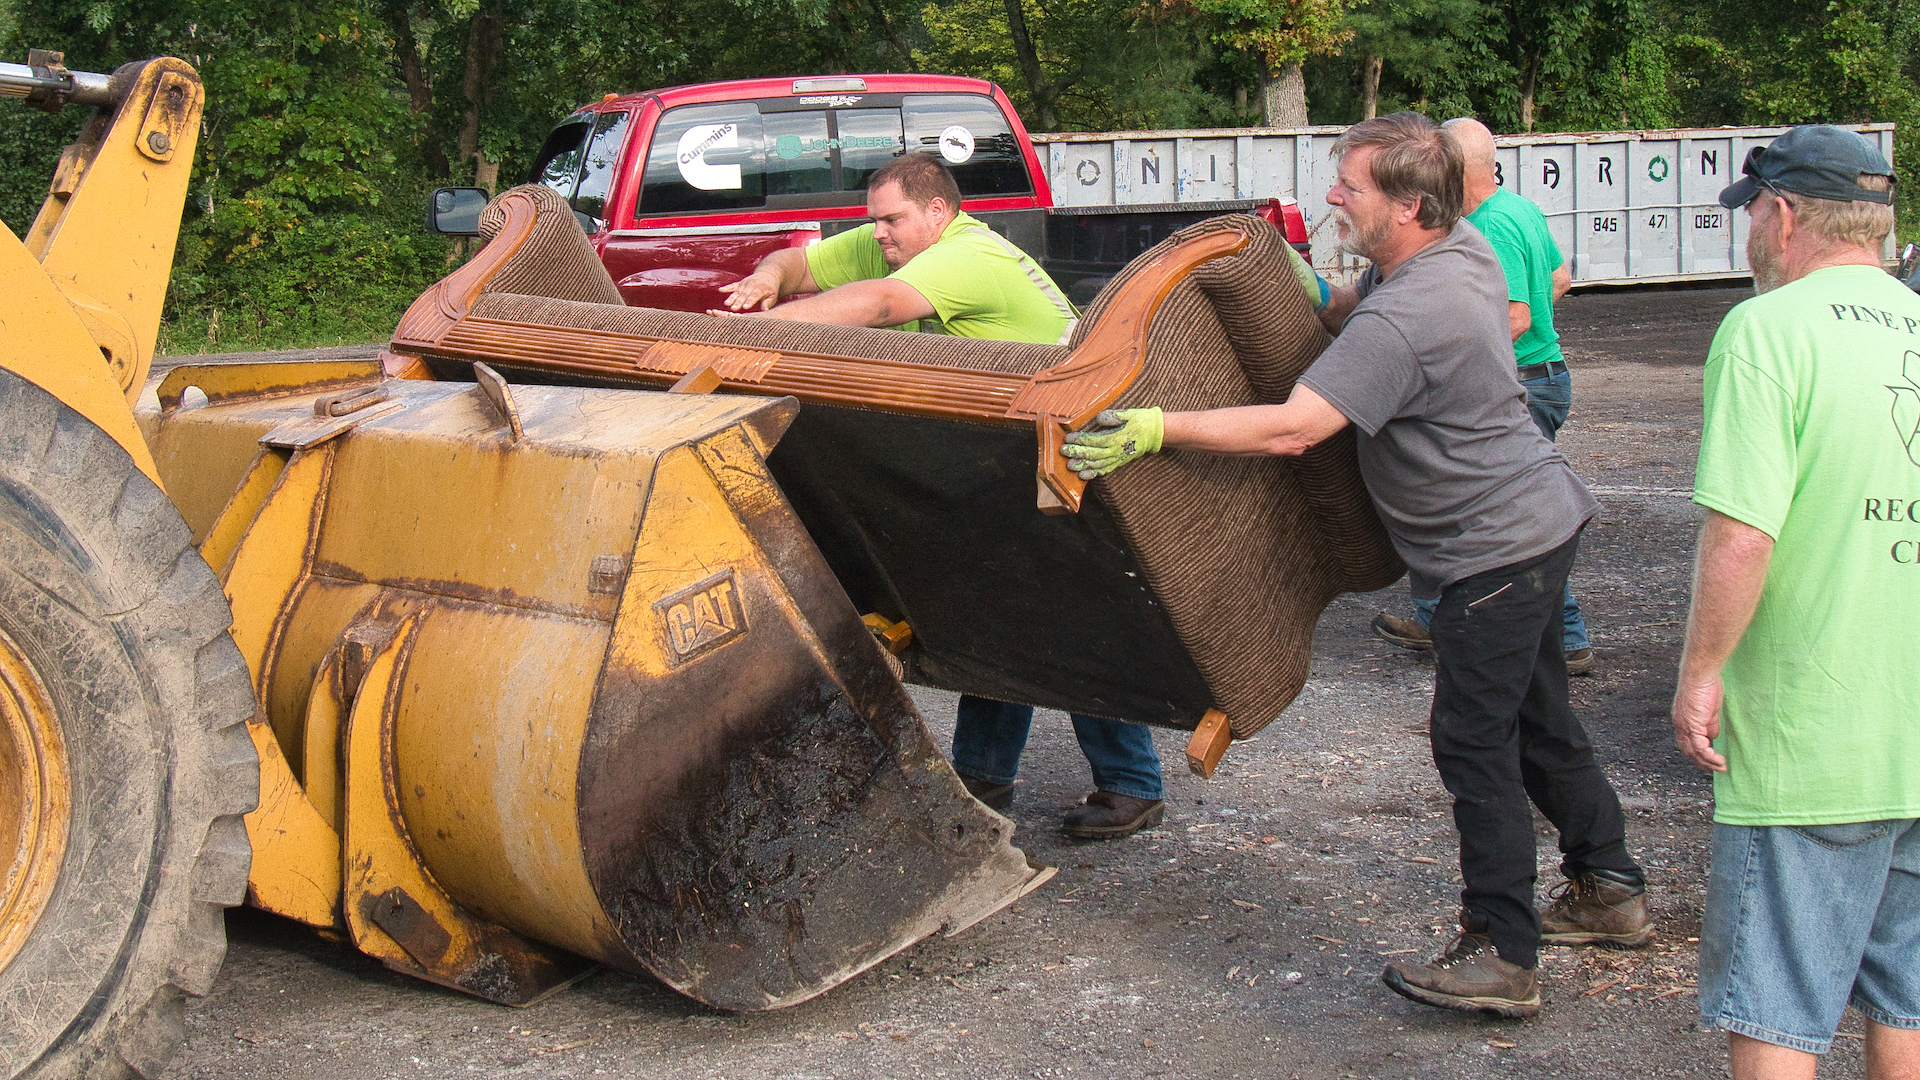 <strong>Volunteers and town representatives helping out at this year's Bob Couse Clean Up Day worked together to unload materials, such as this sofa, from residents' vehicles to be carted away. <em>Photo by Stan Hirson</em></strong>